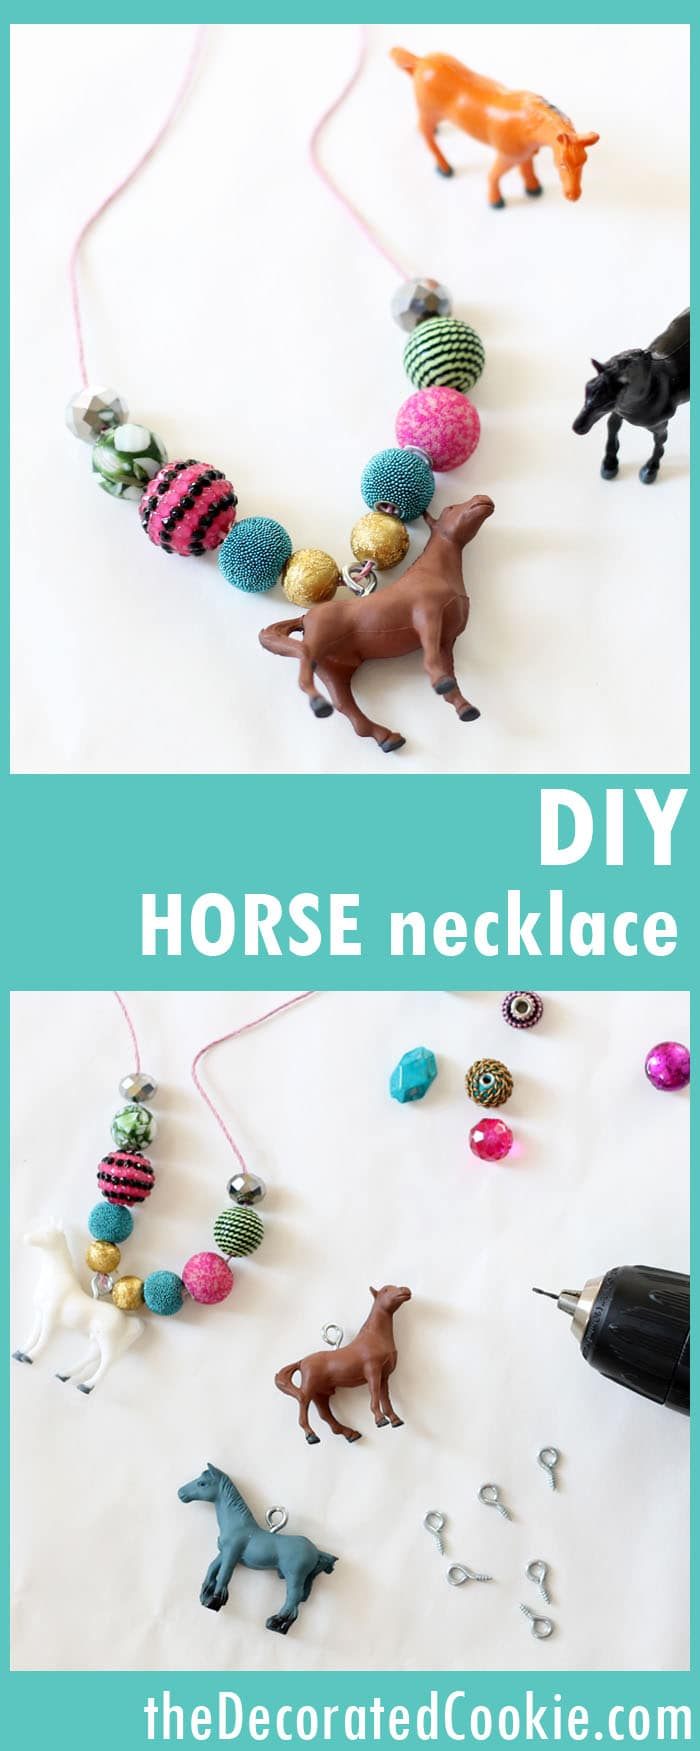 DIY horse necklace craft for birthday parties